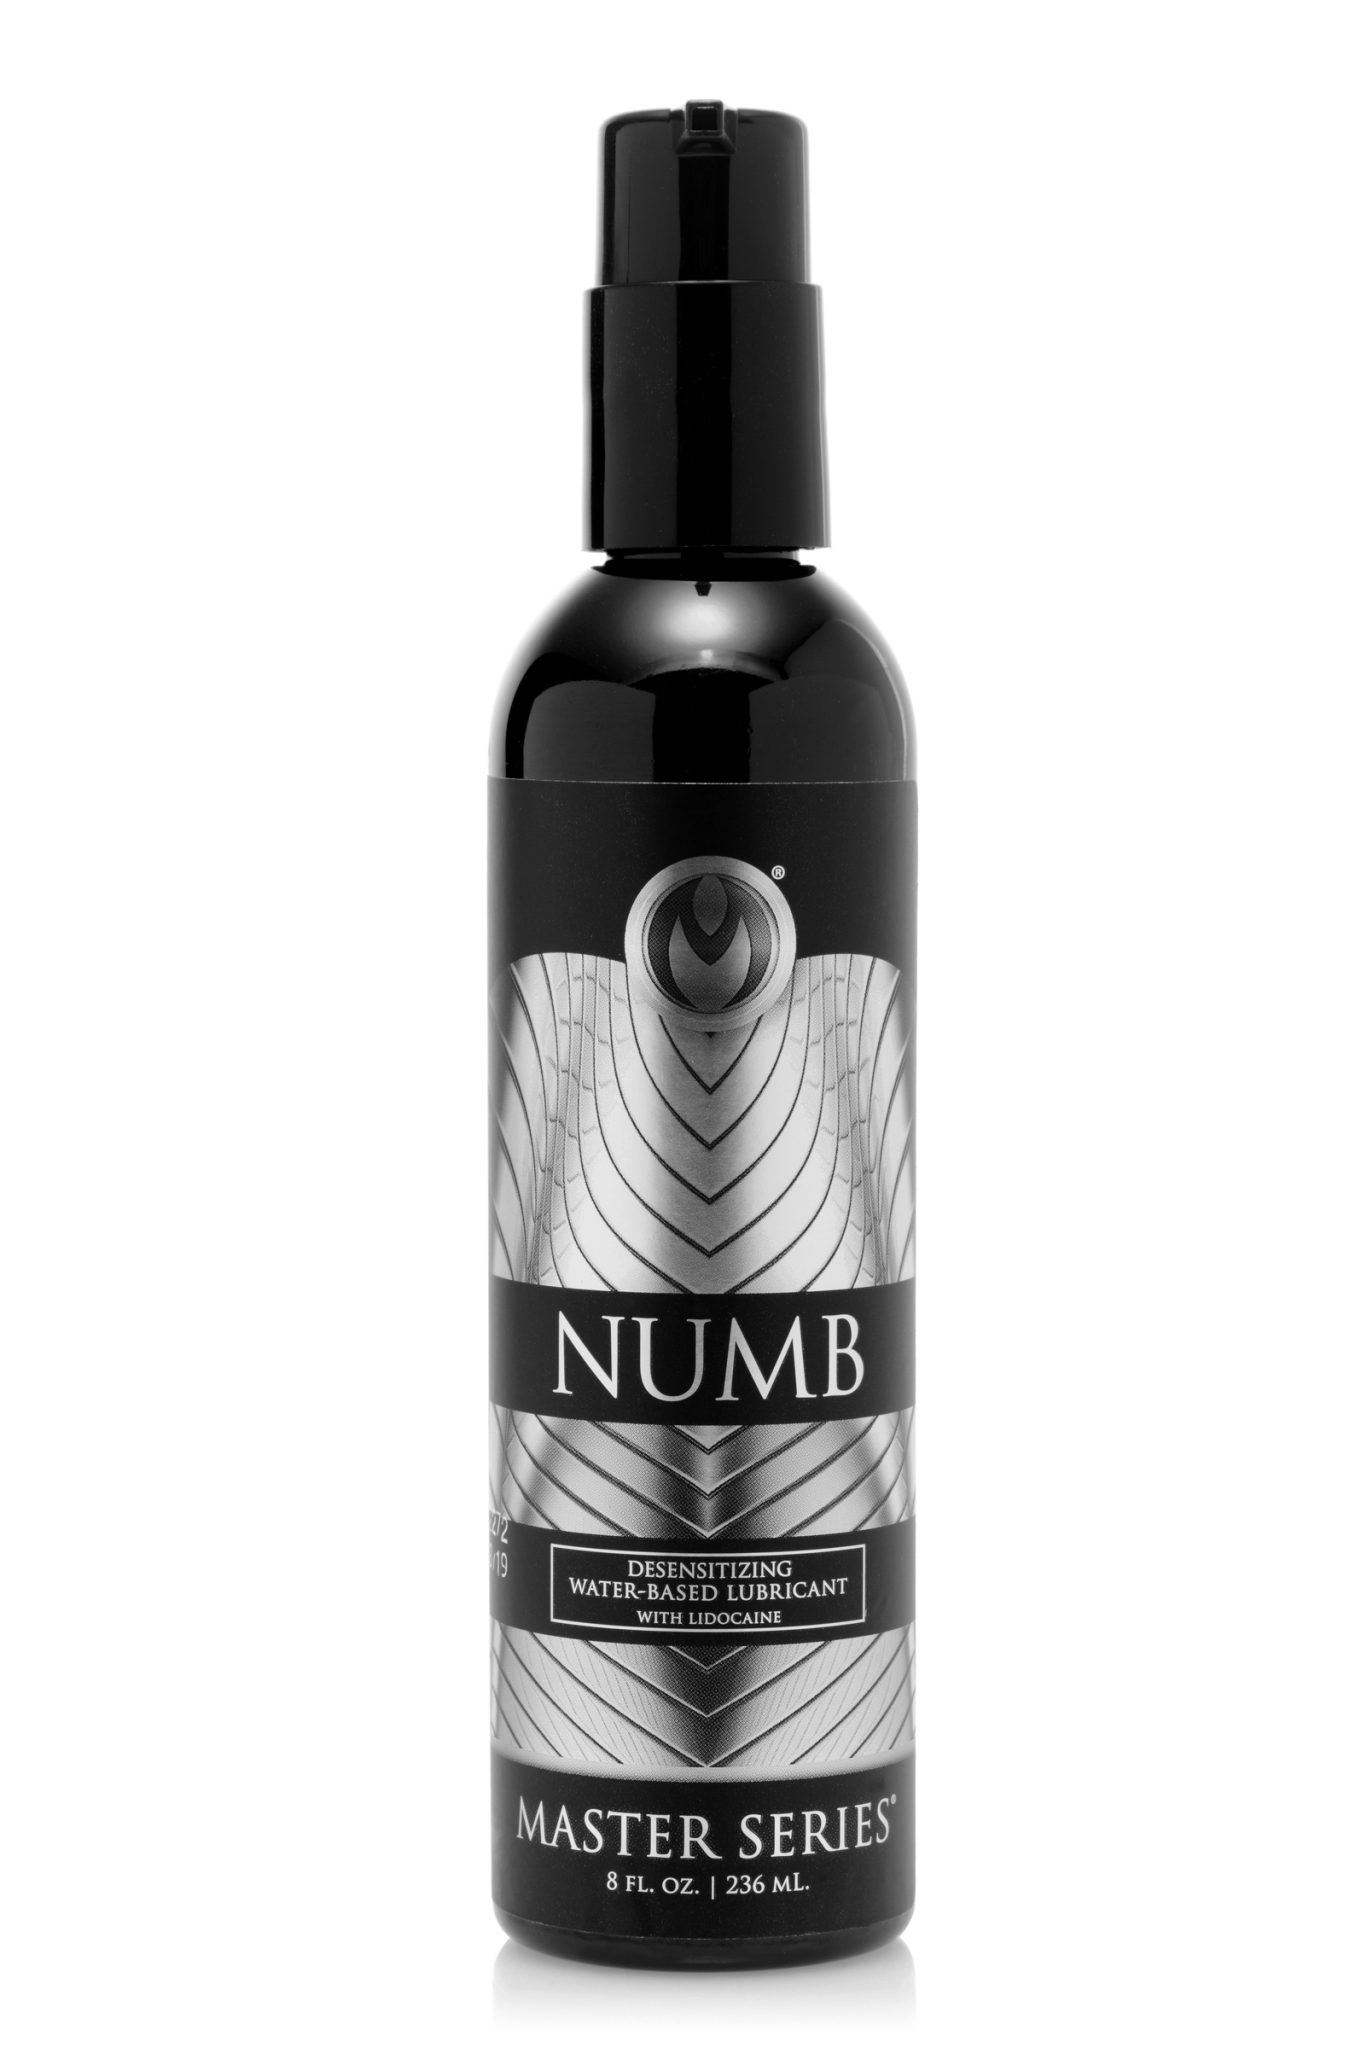 Numb Desensitizing Water Based Lubricant with Lidocaine – 8 oz